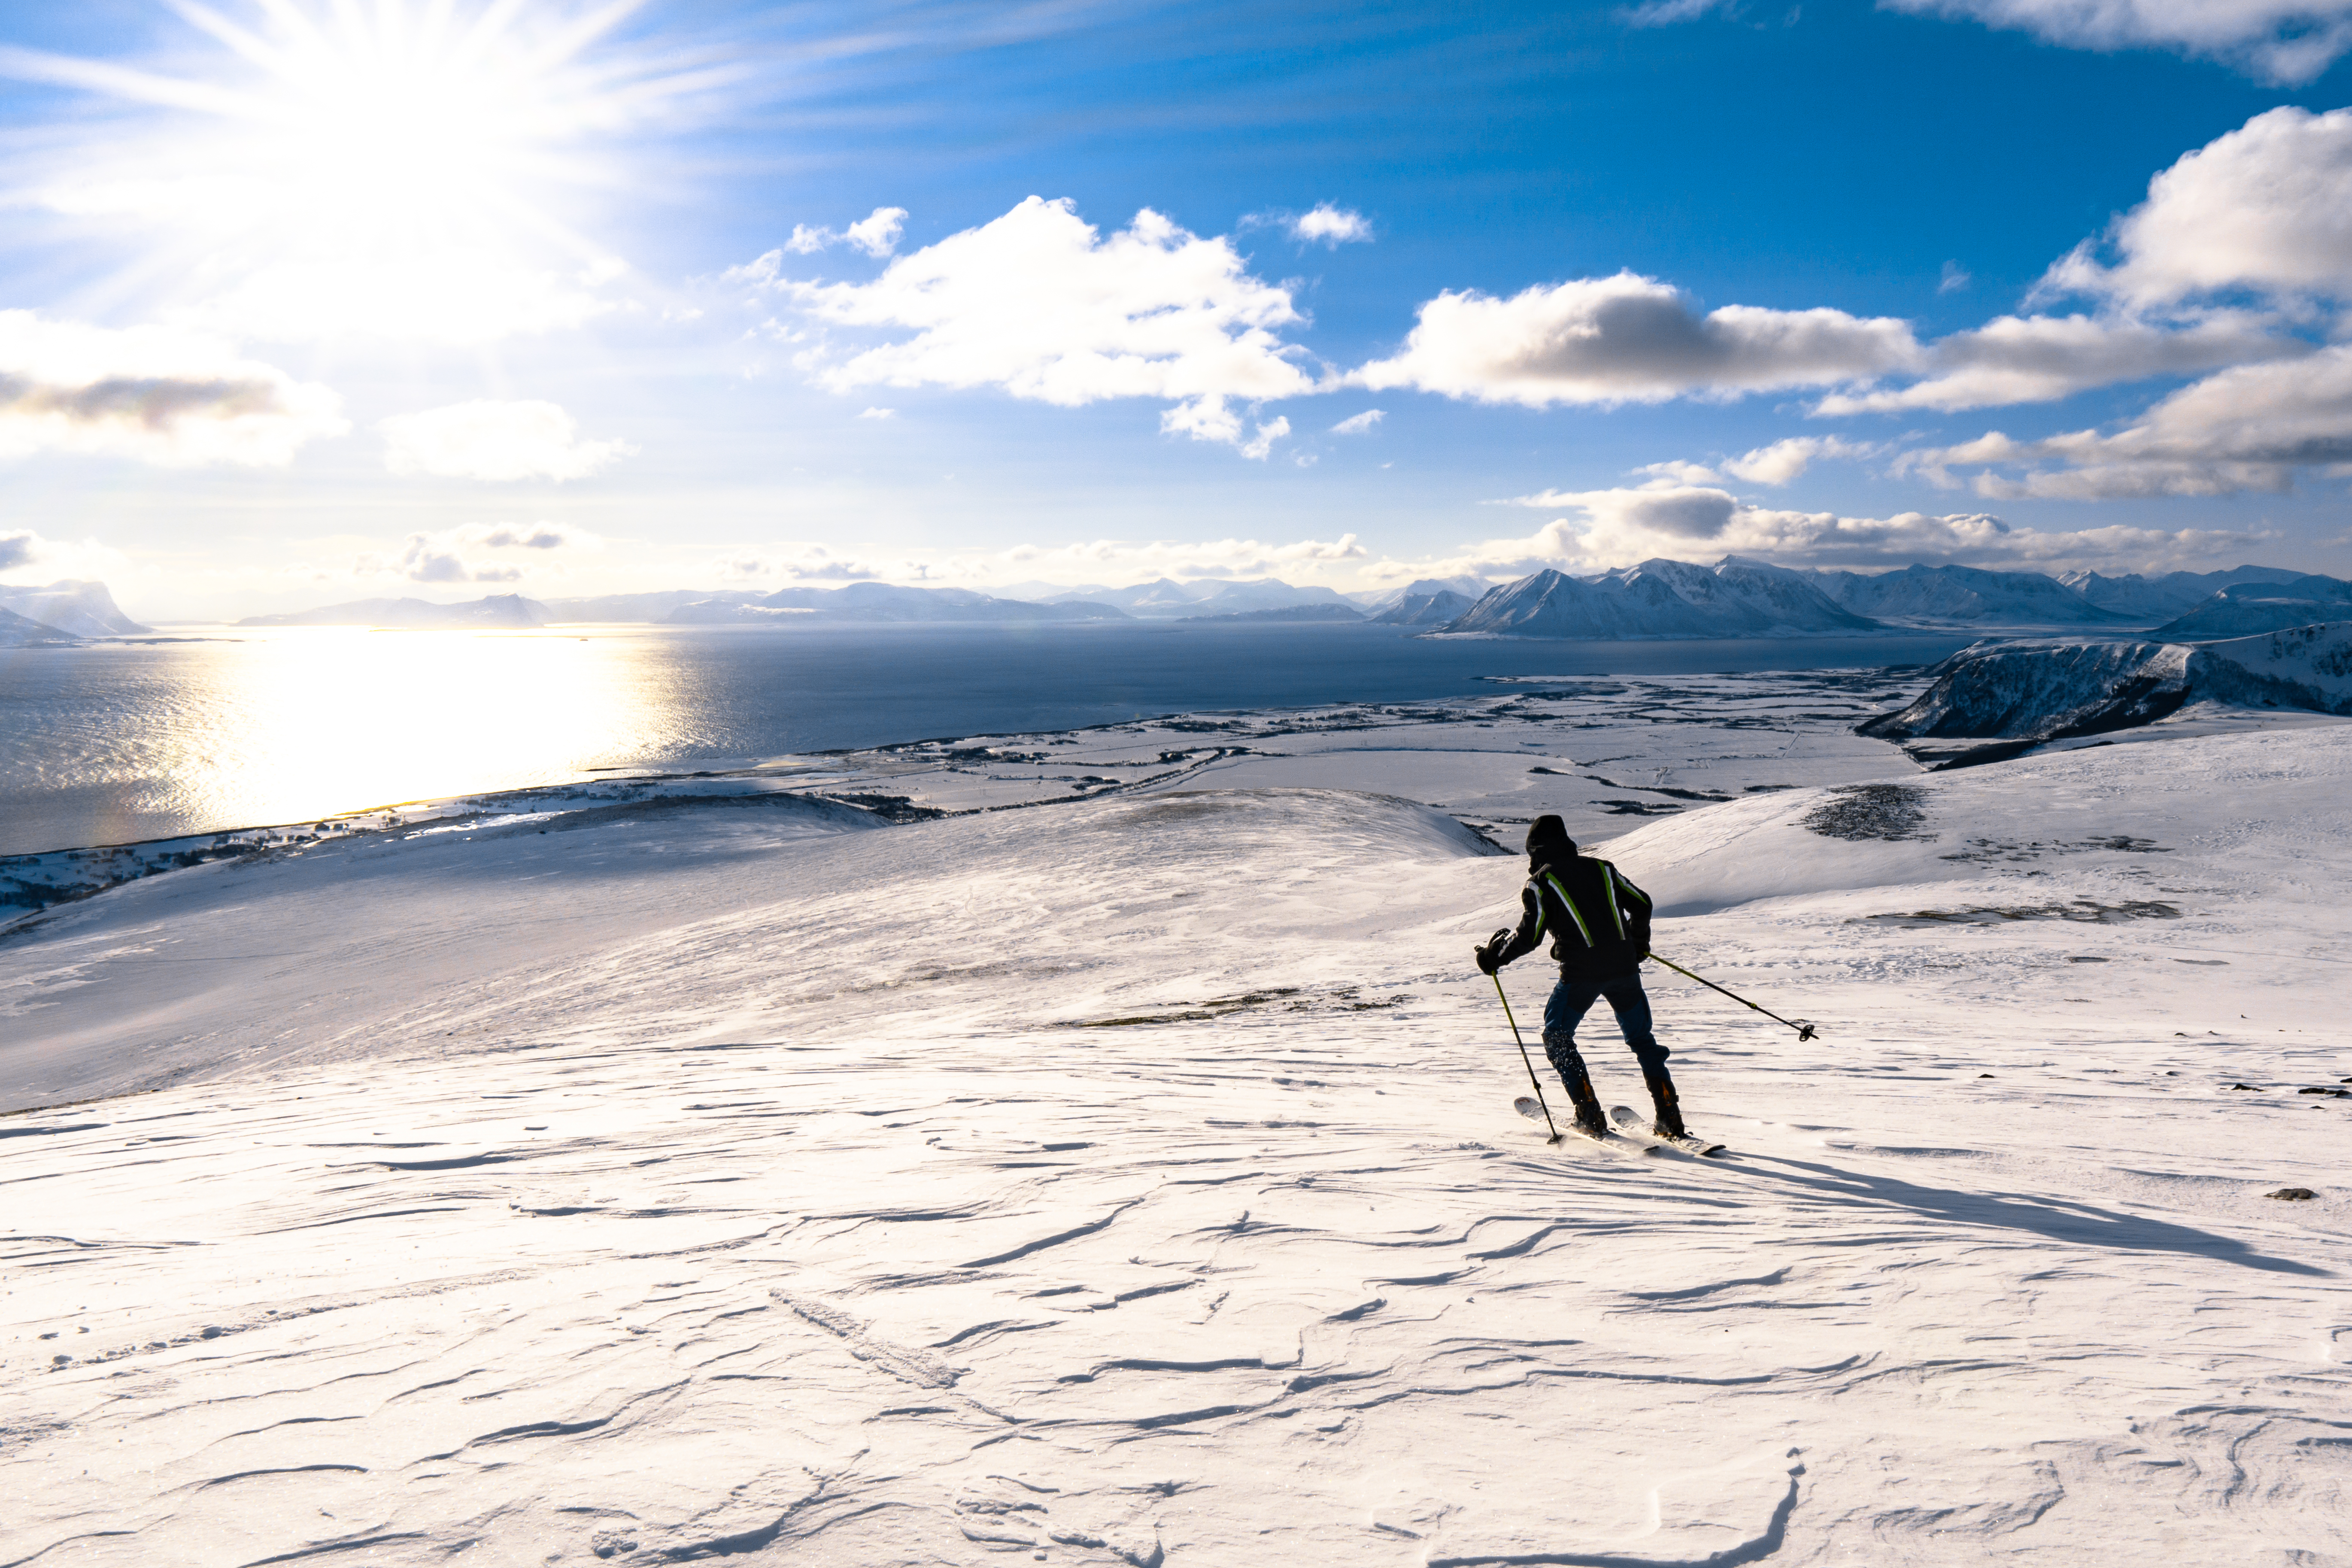 Download Man Skiing on Snowy Mountains of Norway FREE Stock Photo